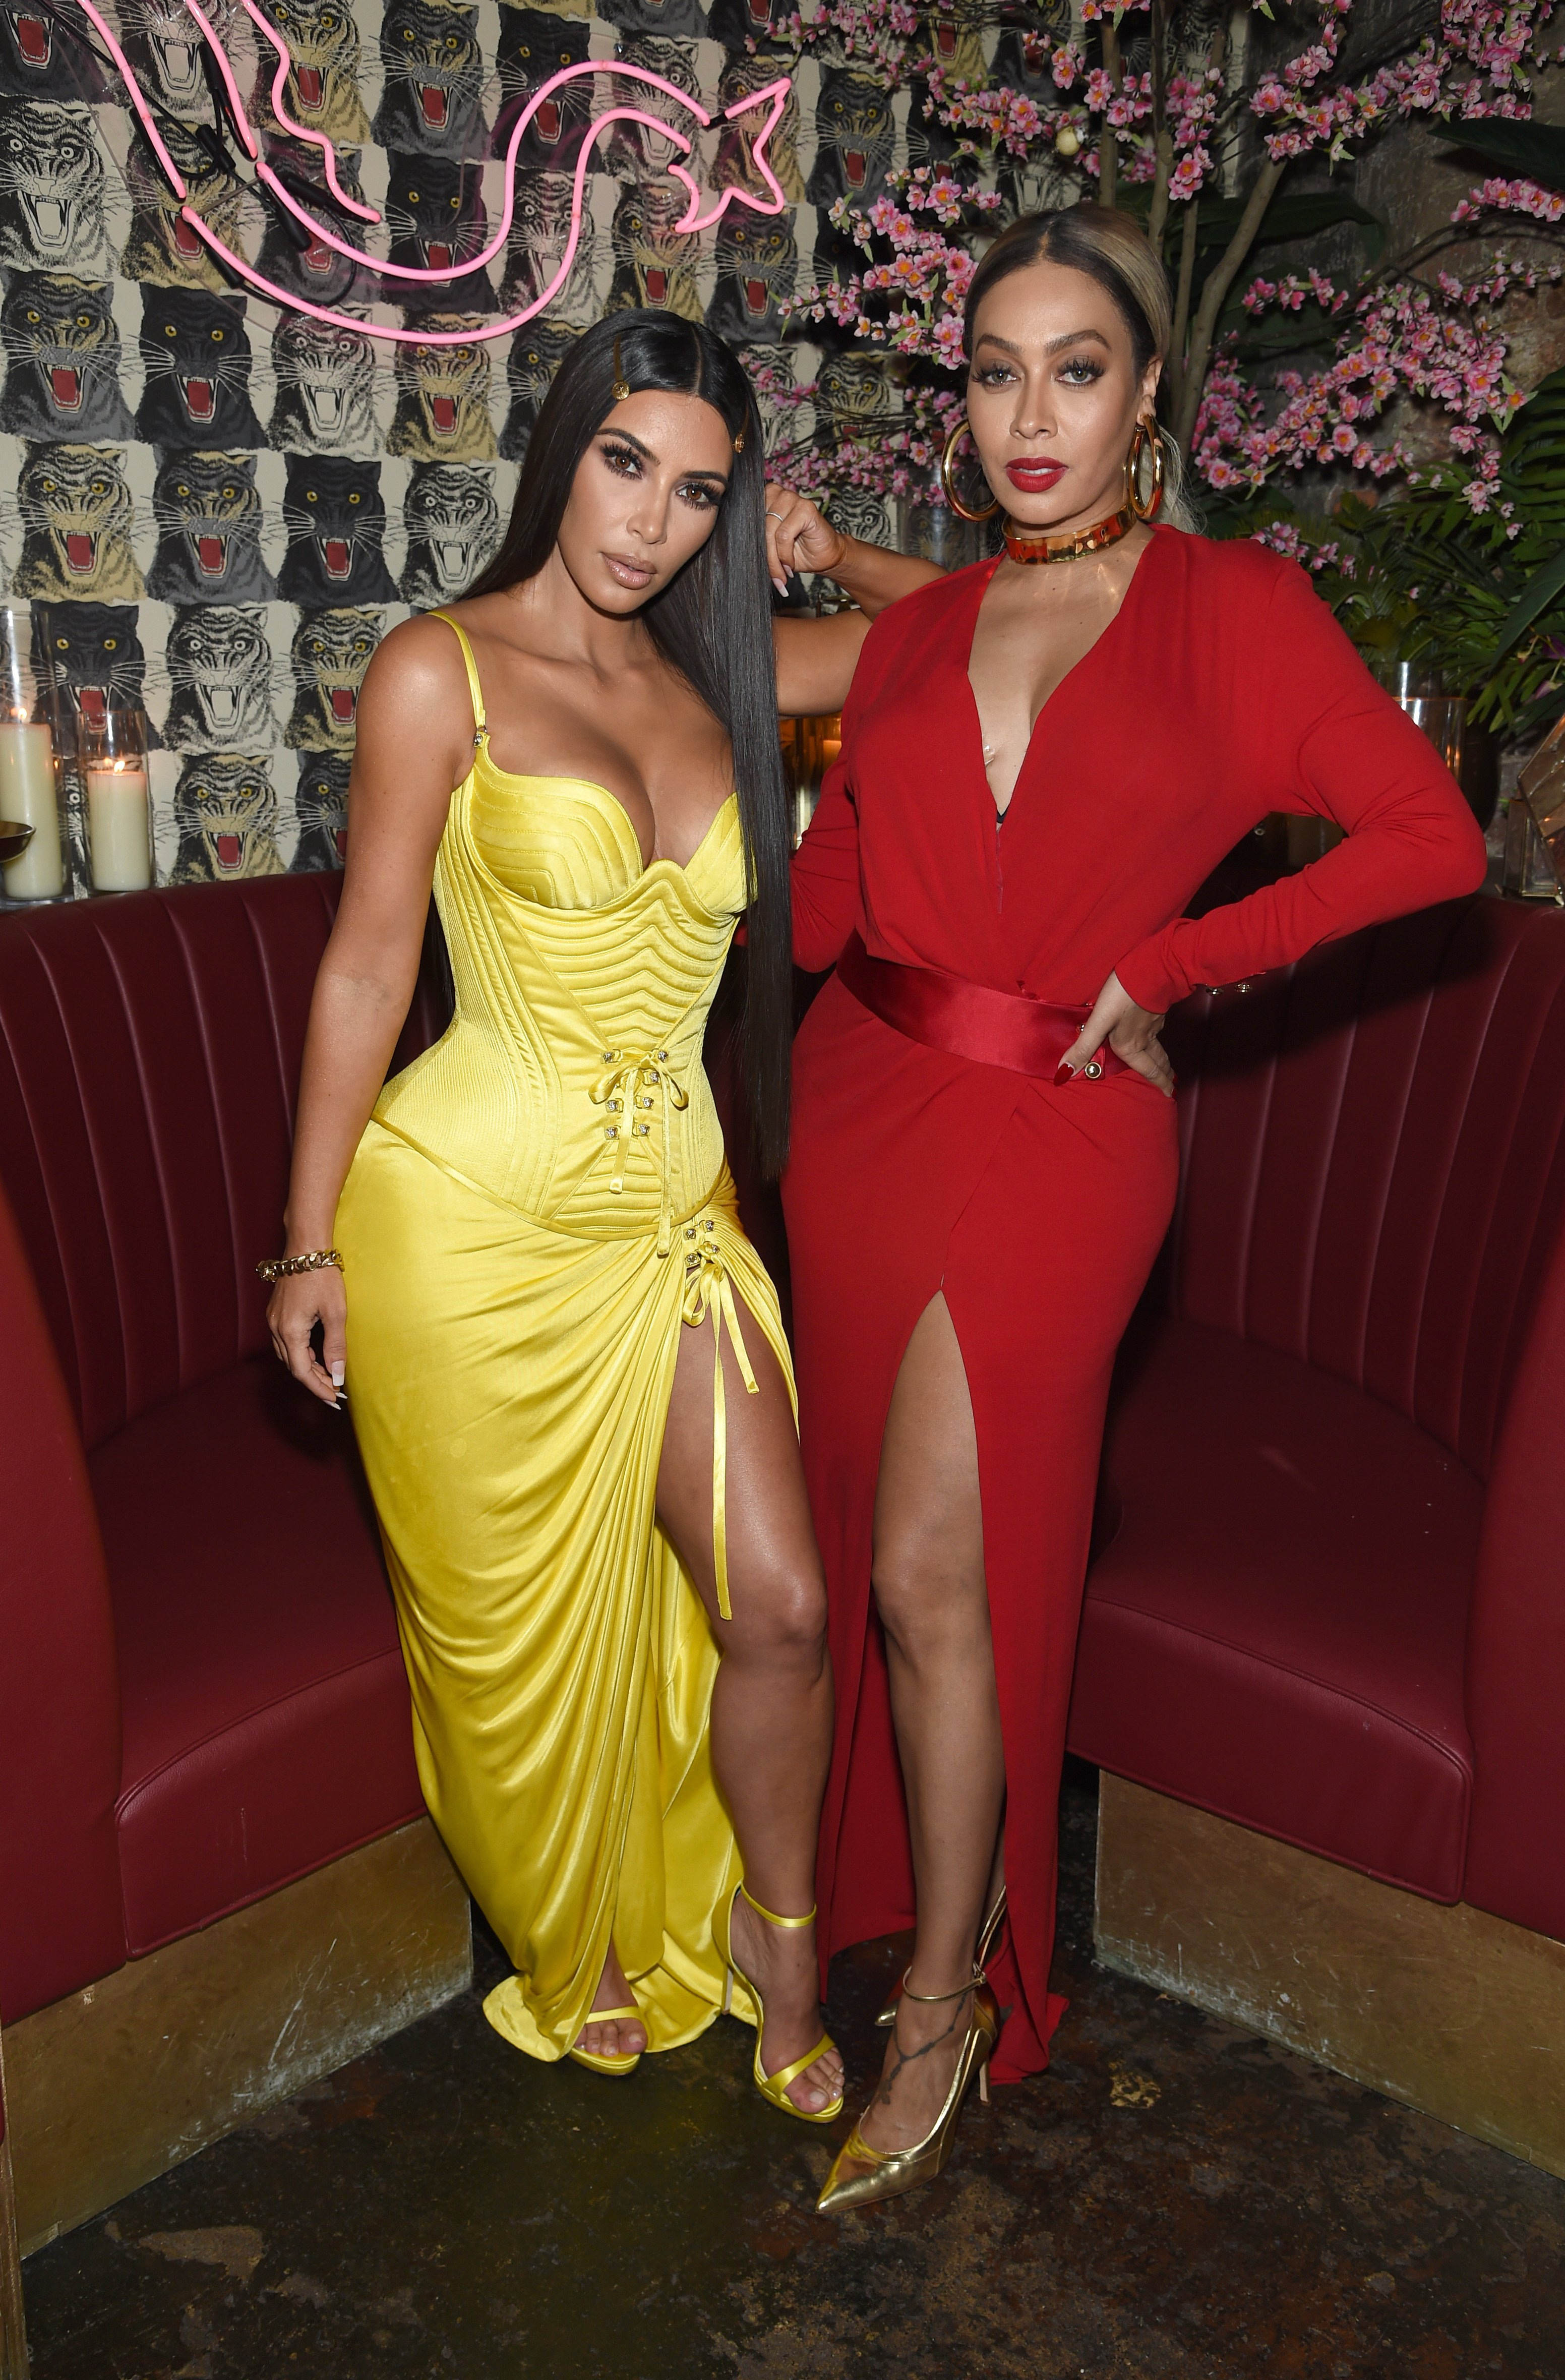 Kim Kardashian and actress Lala Anthony attend a dinner hosted by The Business of Fashion at Peachy's/Chinese Tuxedo on May 8, 2018 in New York City.   Photo: Getty Images